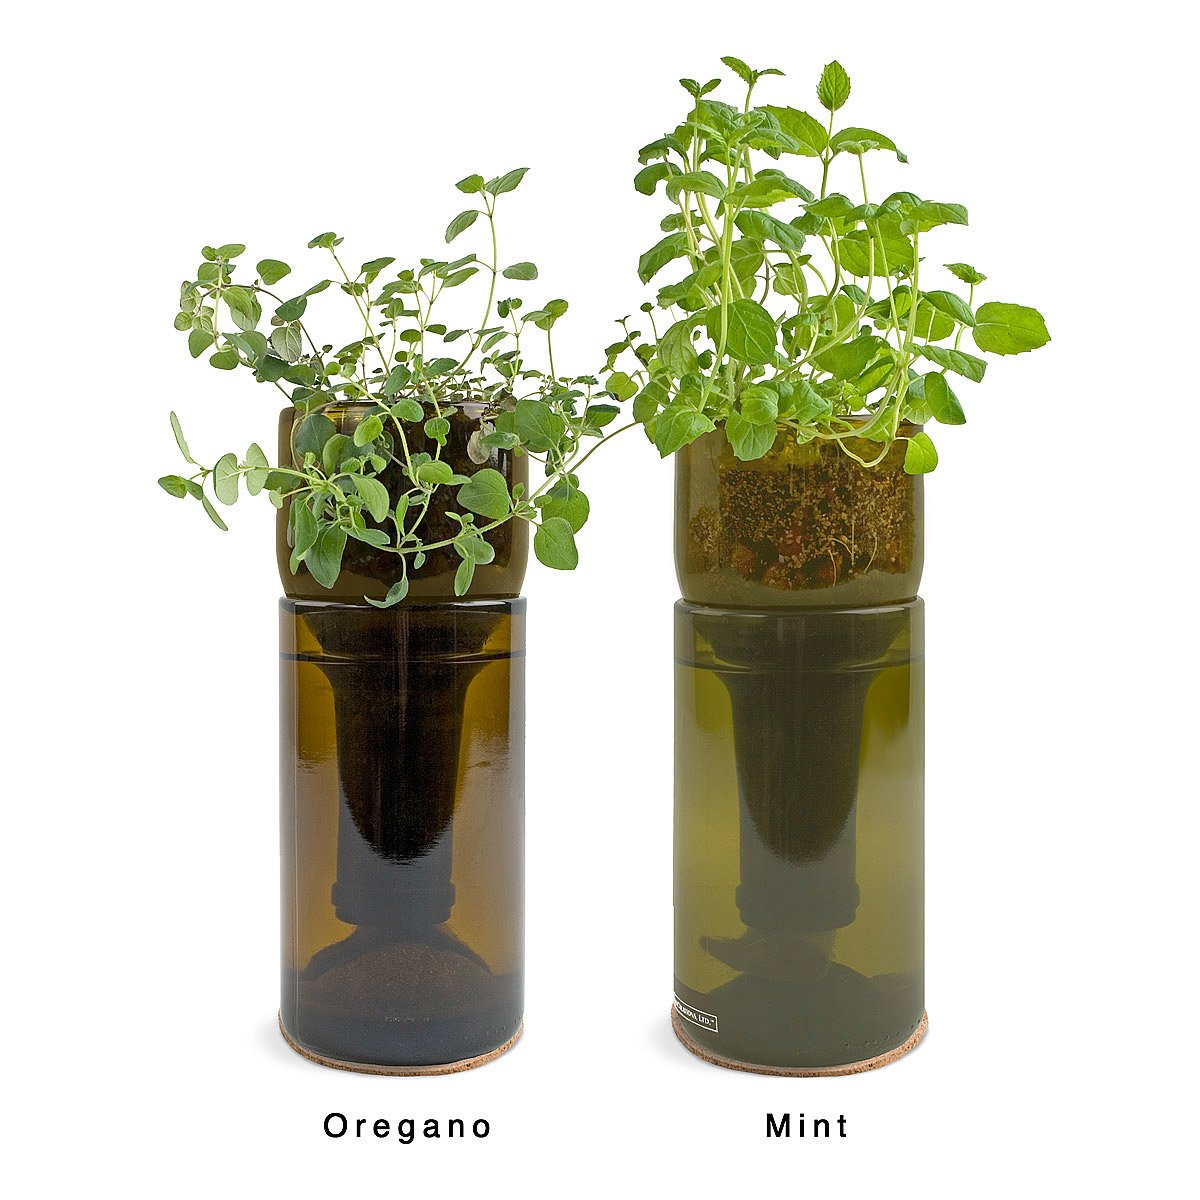 Indoor Herb Planter Inspiration Growbottle  Indoor Herb Garden Kit Wine Bottle Planter Inspiration